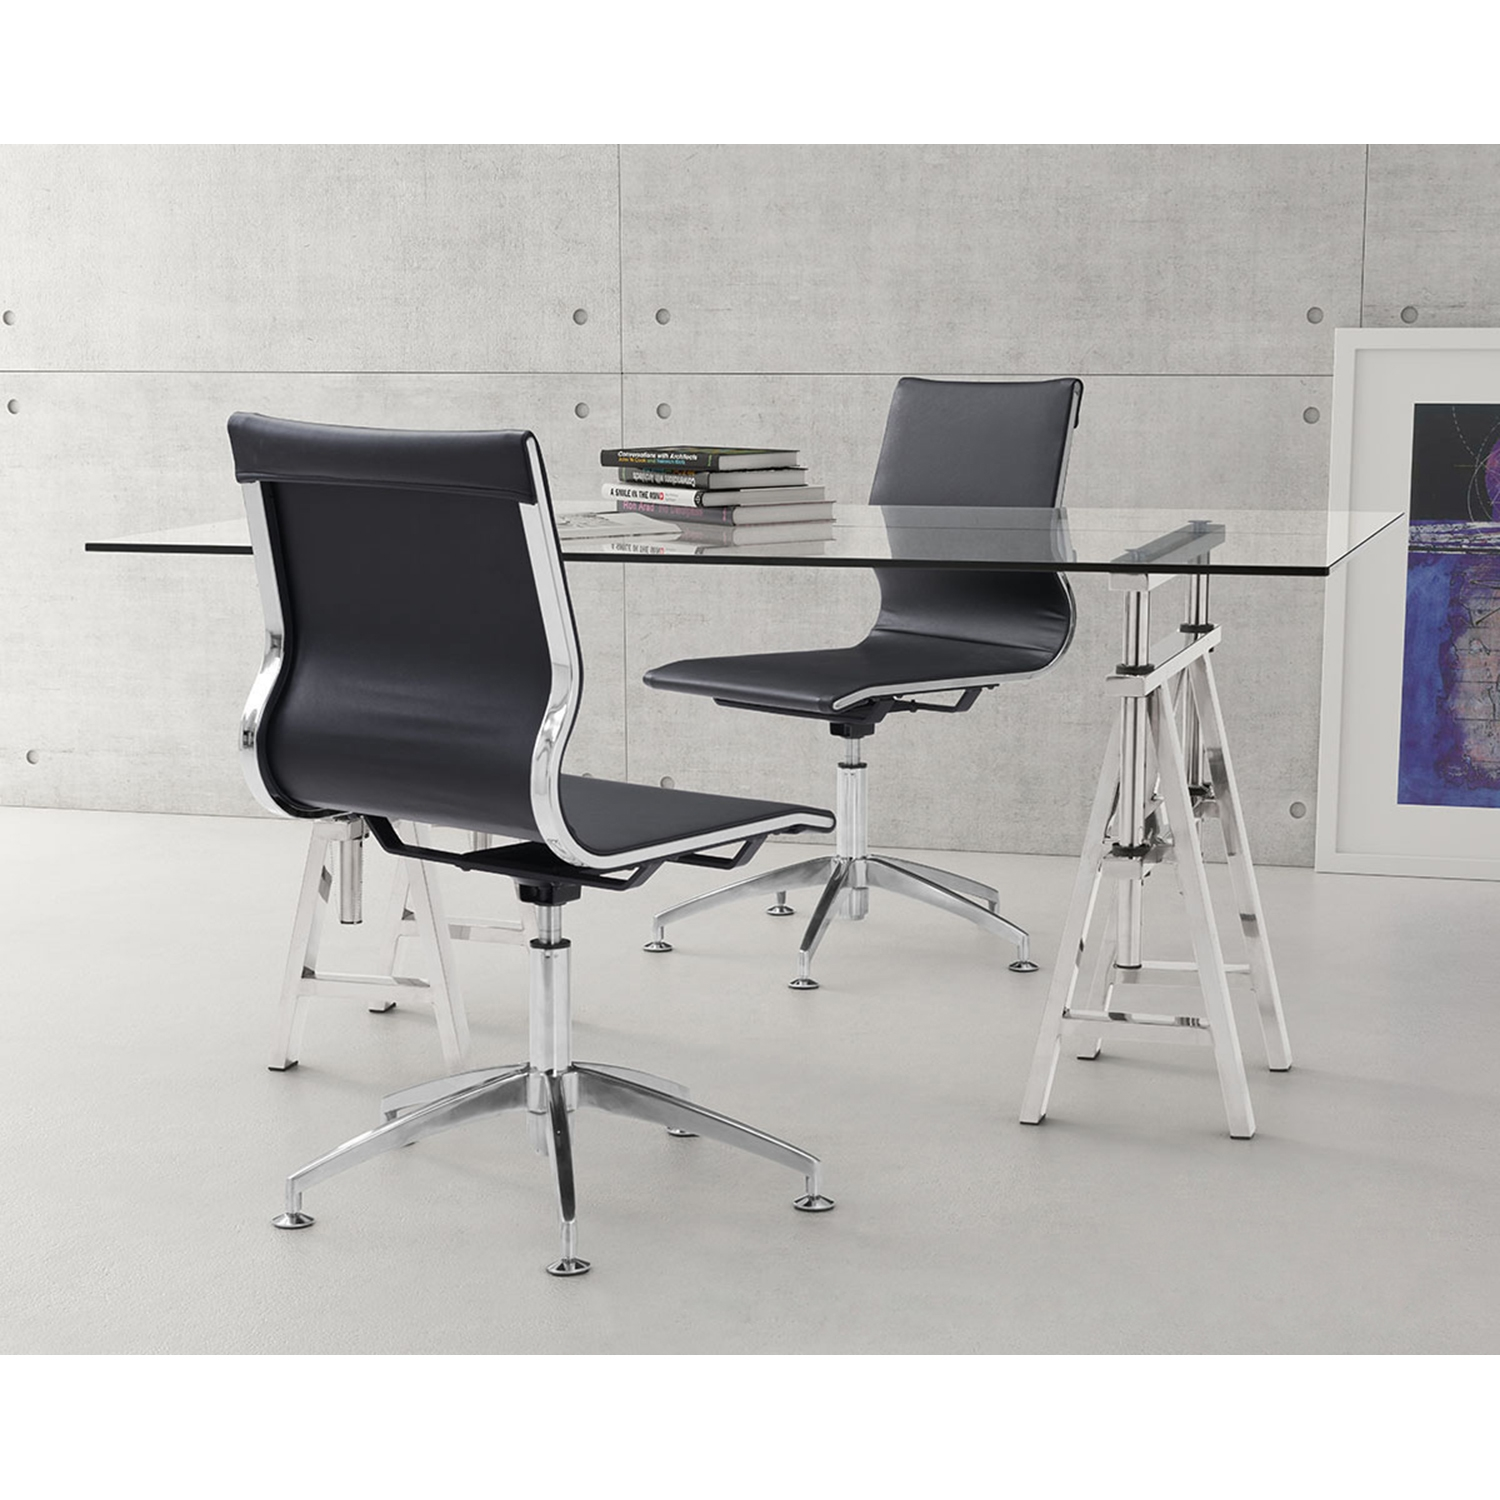 Glider Conference Chair - Black - ZM-100377